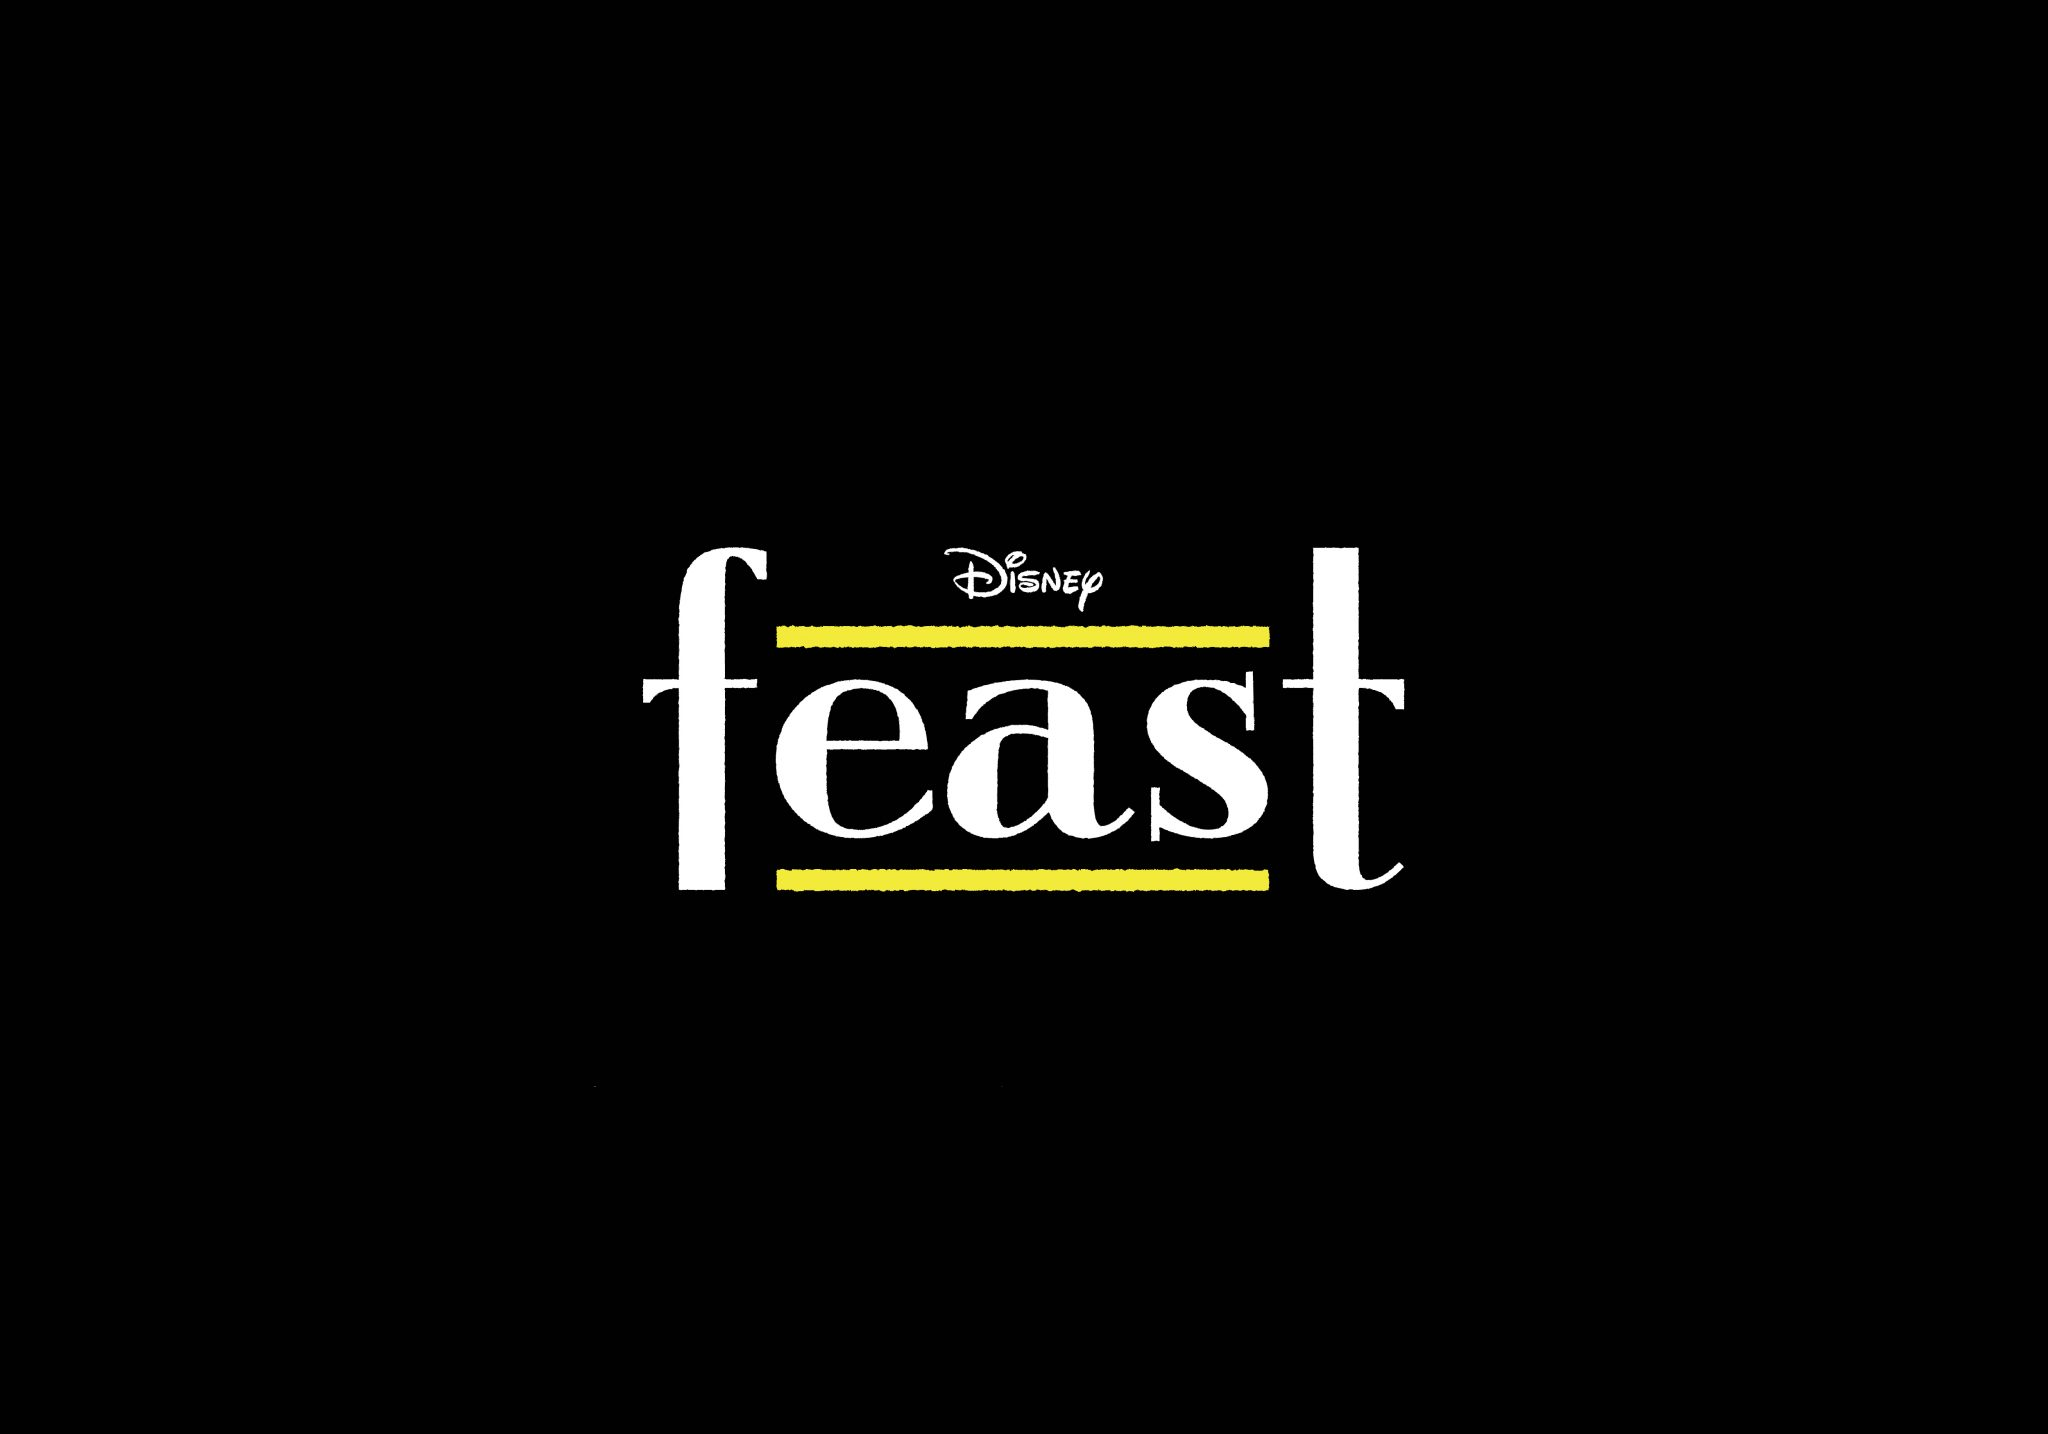 FEAST_TitleLogo_Black_FINAL_ROUGH_EDGE